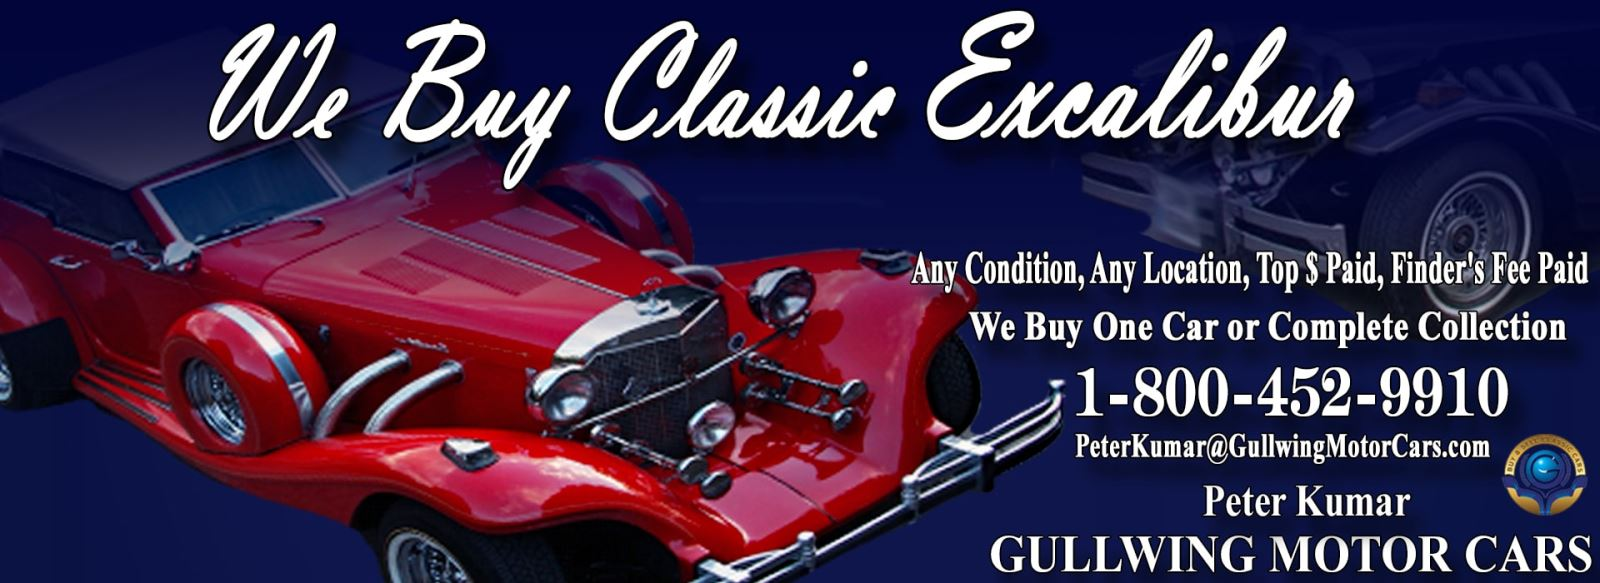 Classic Excalibur for sale, we buy vintage Excalibur. Call Peter Kumar. Gullwing Motor